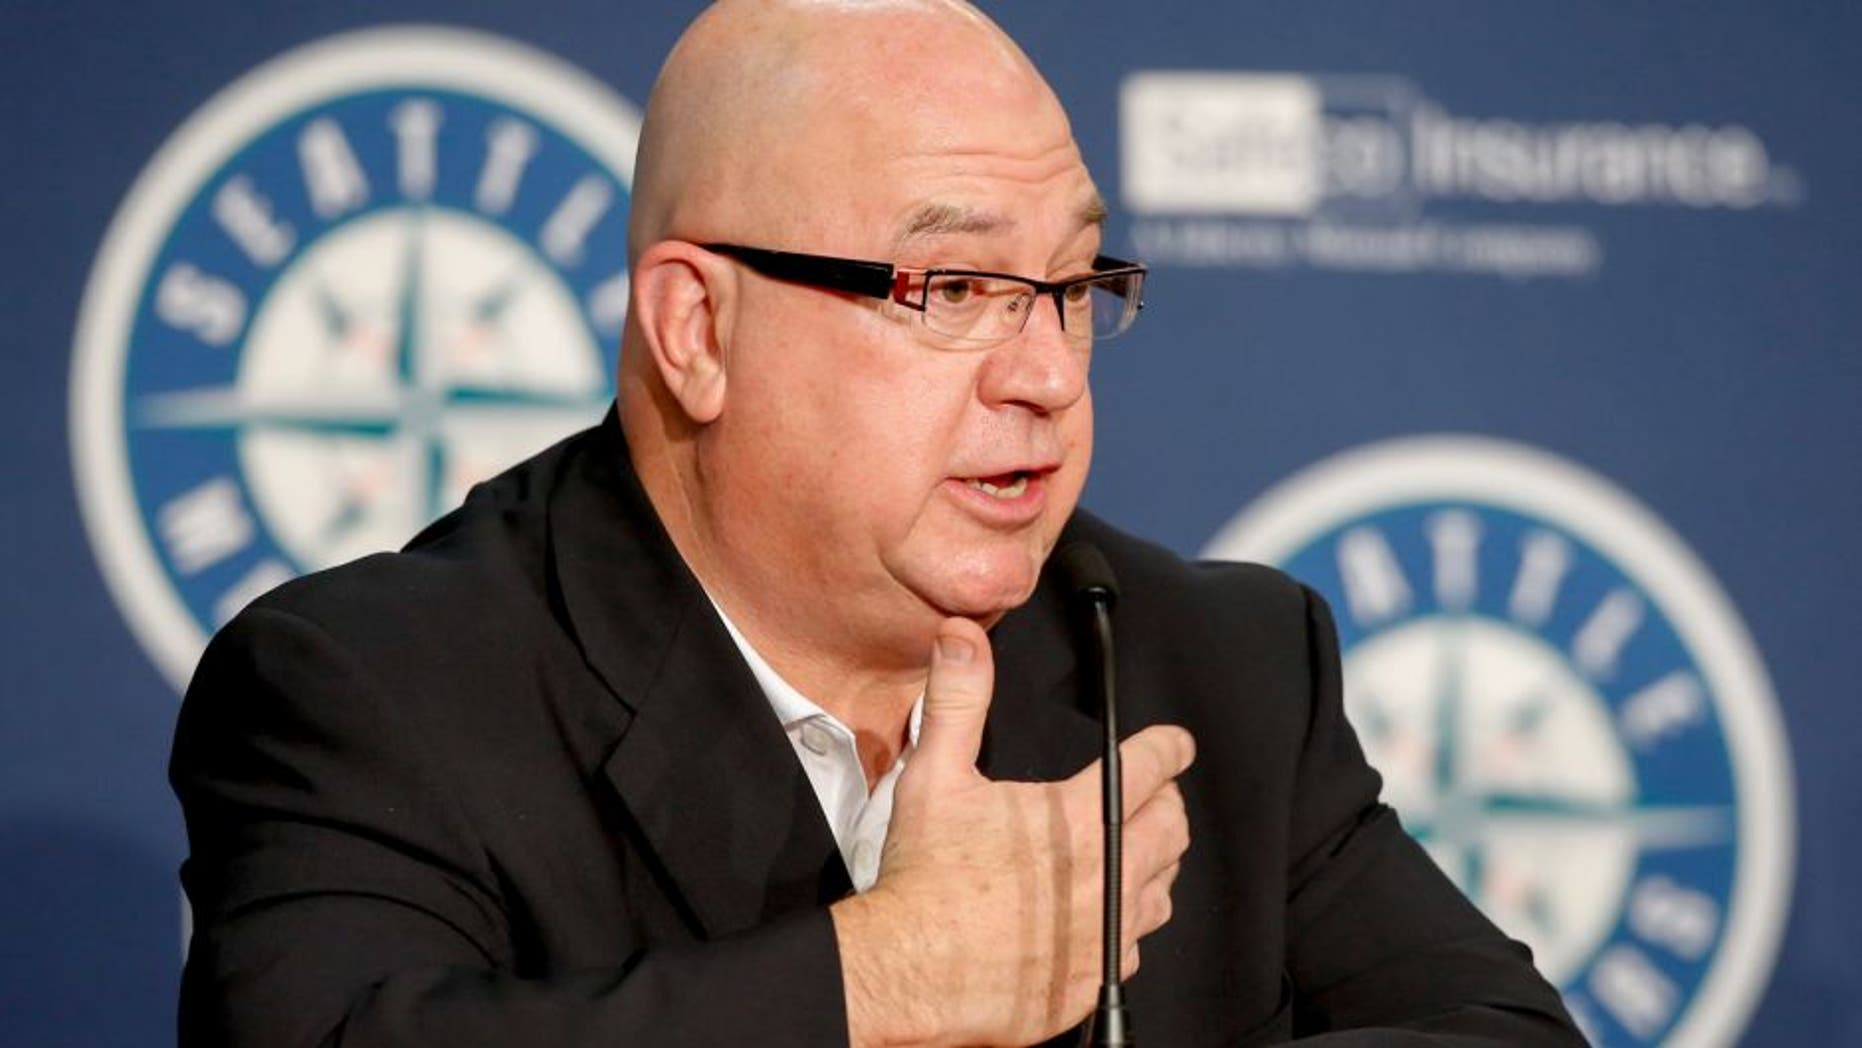 SEATTLE, WA - JUNE 23: Seattle Mariners' GM Jack Zduriencik speaks to the media during a press conference announcing the signing of first-round draft pick Alex Jackson prior to the game against the Boston Red Sox at Safeco Field on June 23, 2014 in Seattle, Washington. (Photo by Otto Greule Jr/Getty Images)